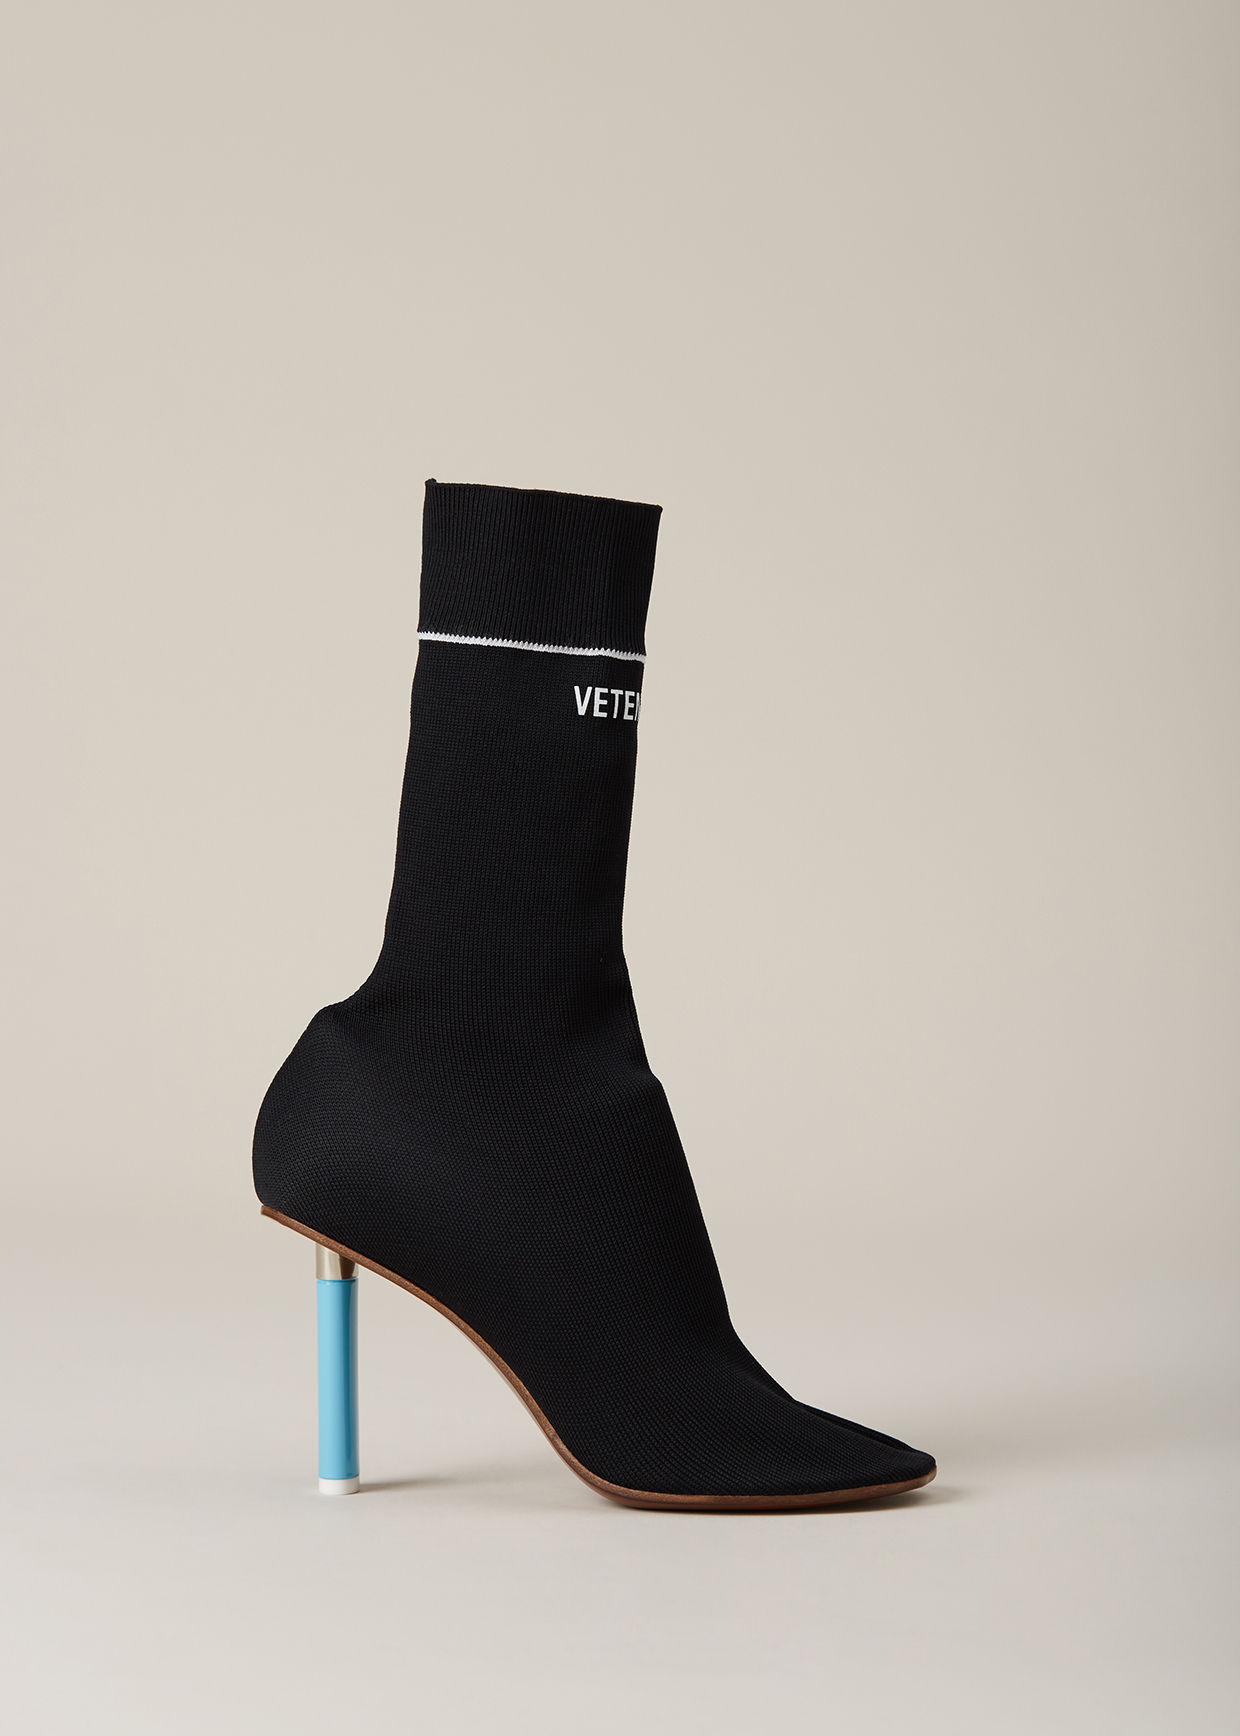 Black Clothing Rack Vetements Sock Ankle Boots In Black | Lyst